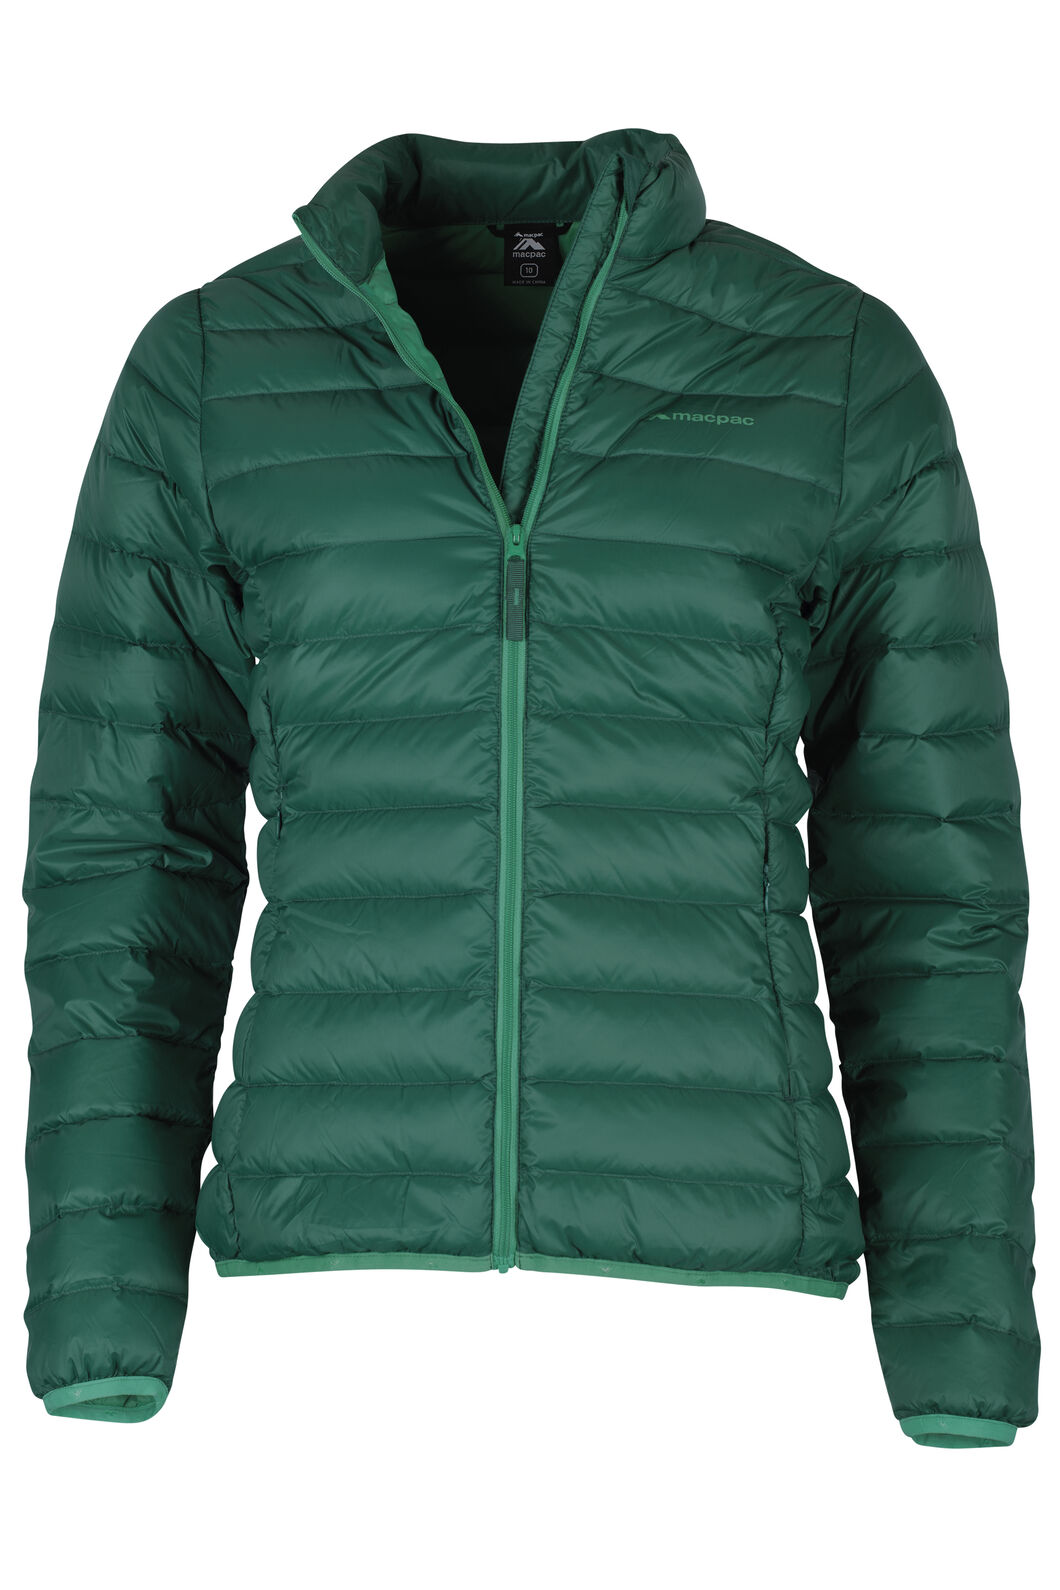 Macpac Uber Light Down Jacket - Women's, Teal, hi-res